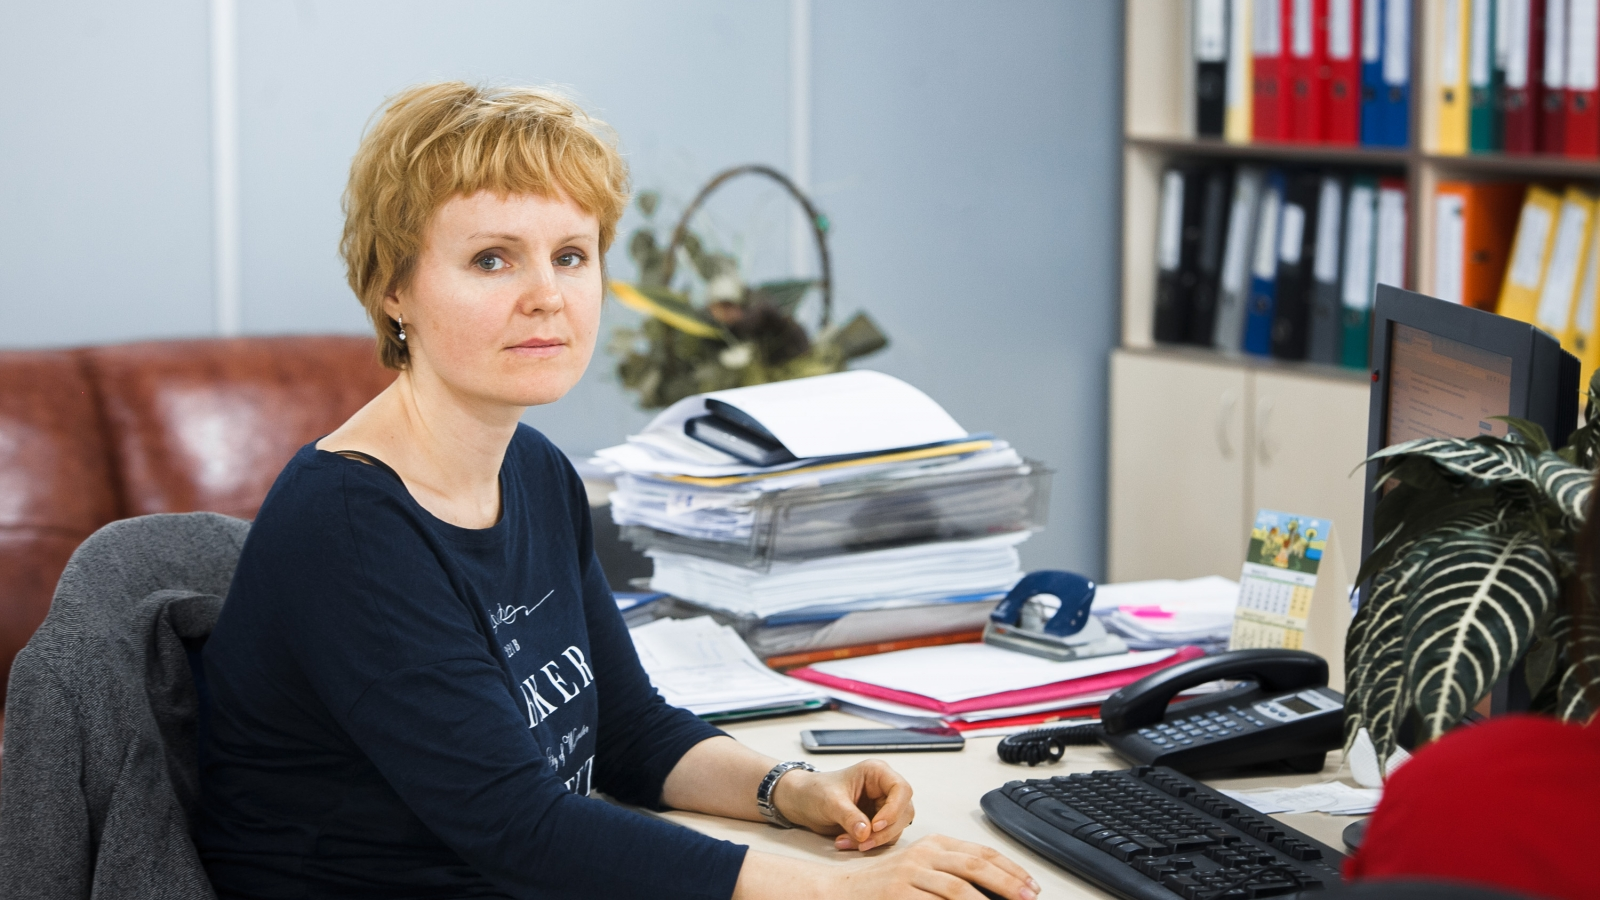 Lyudmila Chekina, CEO at TUT.BY, the leading online news portal in Belarus